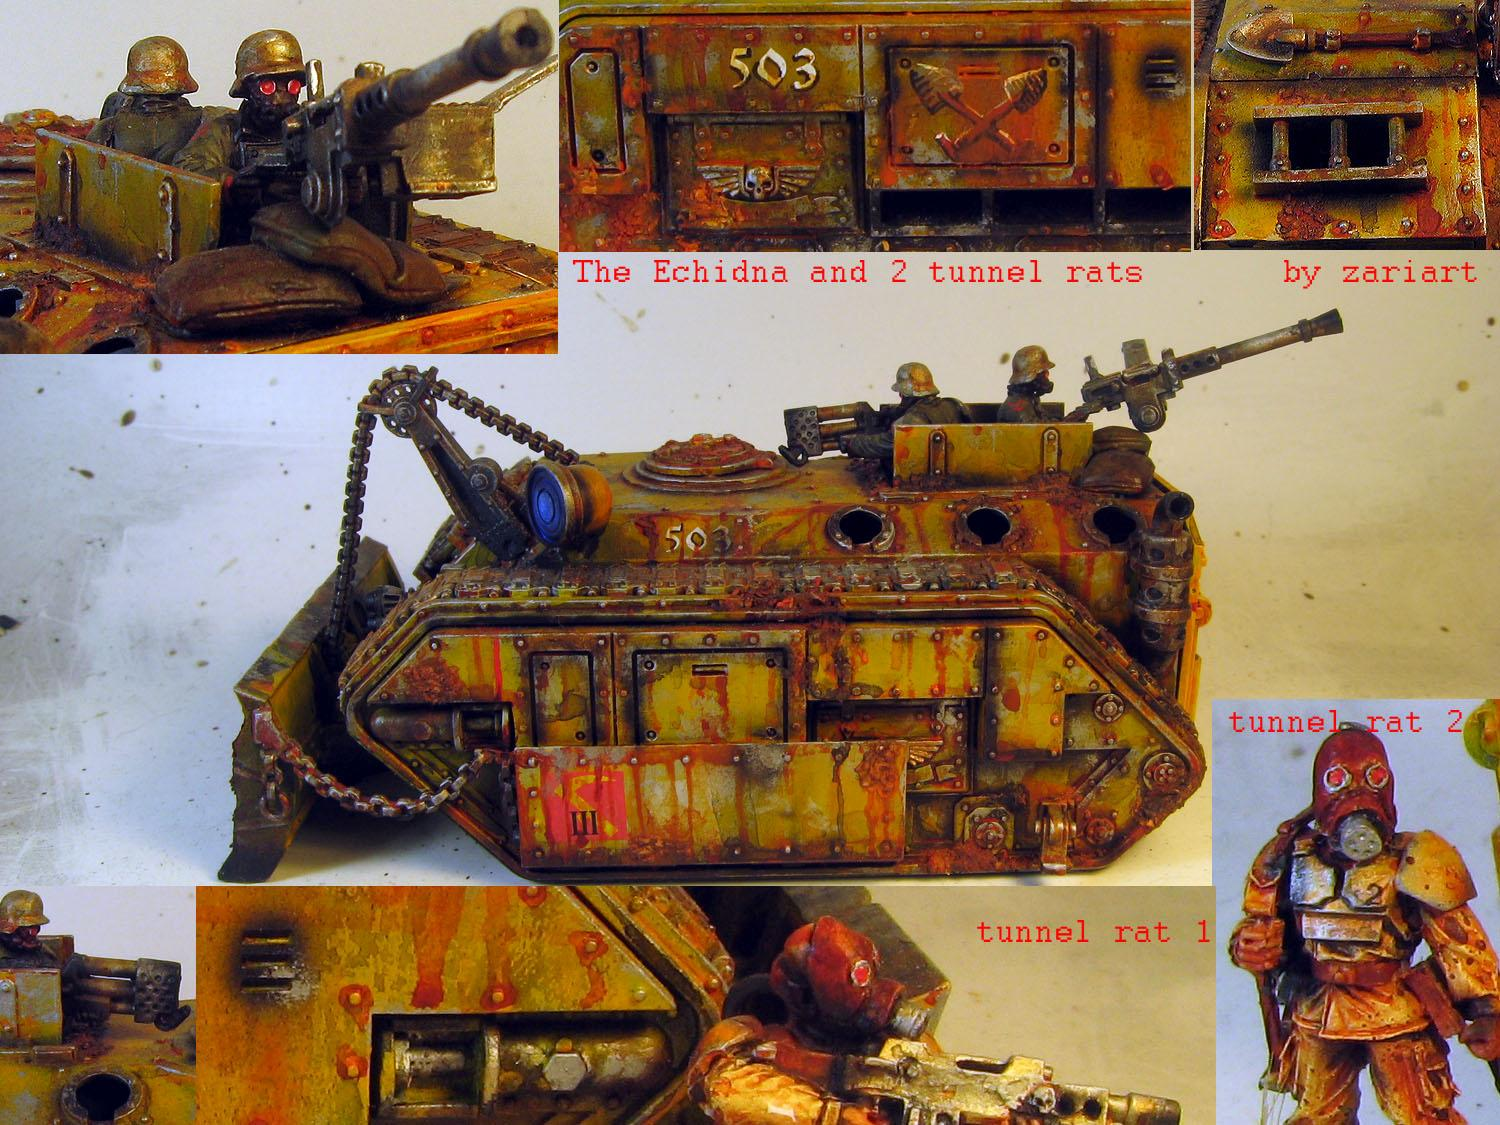 Chimera, Damage, Dirty, Echidna, Gas Mask, Heretics, Imperial Guard, Miners, Rust